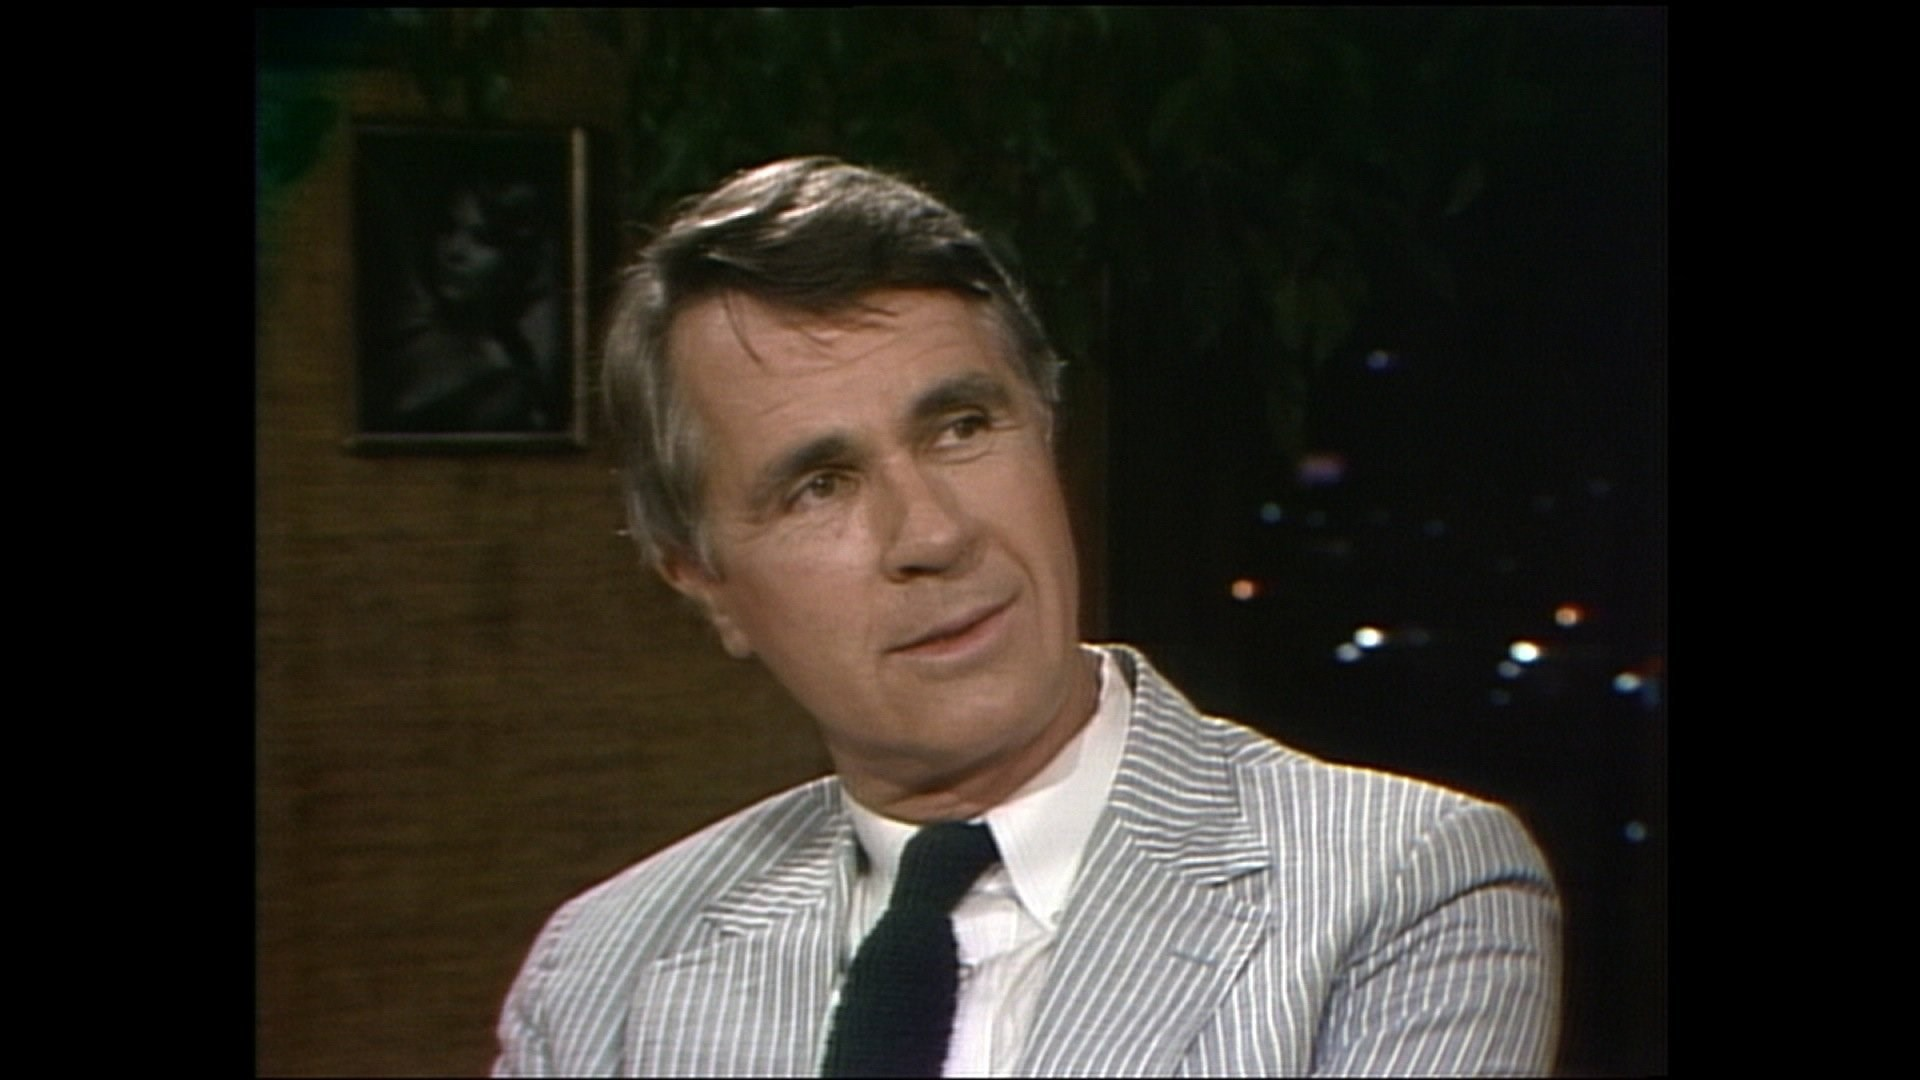 Actor James Noble, best known for playing Governor Eugene Gatling on the television show Benson, has died at the age of 94. Noble is seen here in an interview with CNN in 1981.